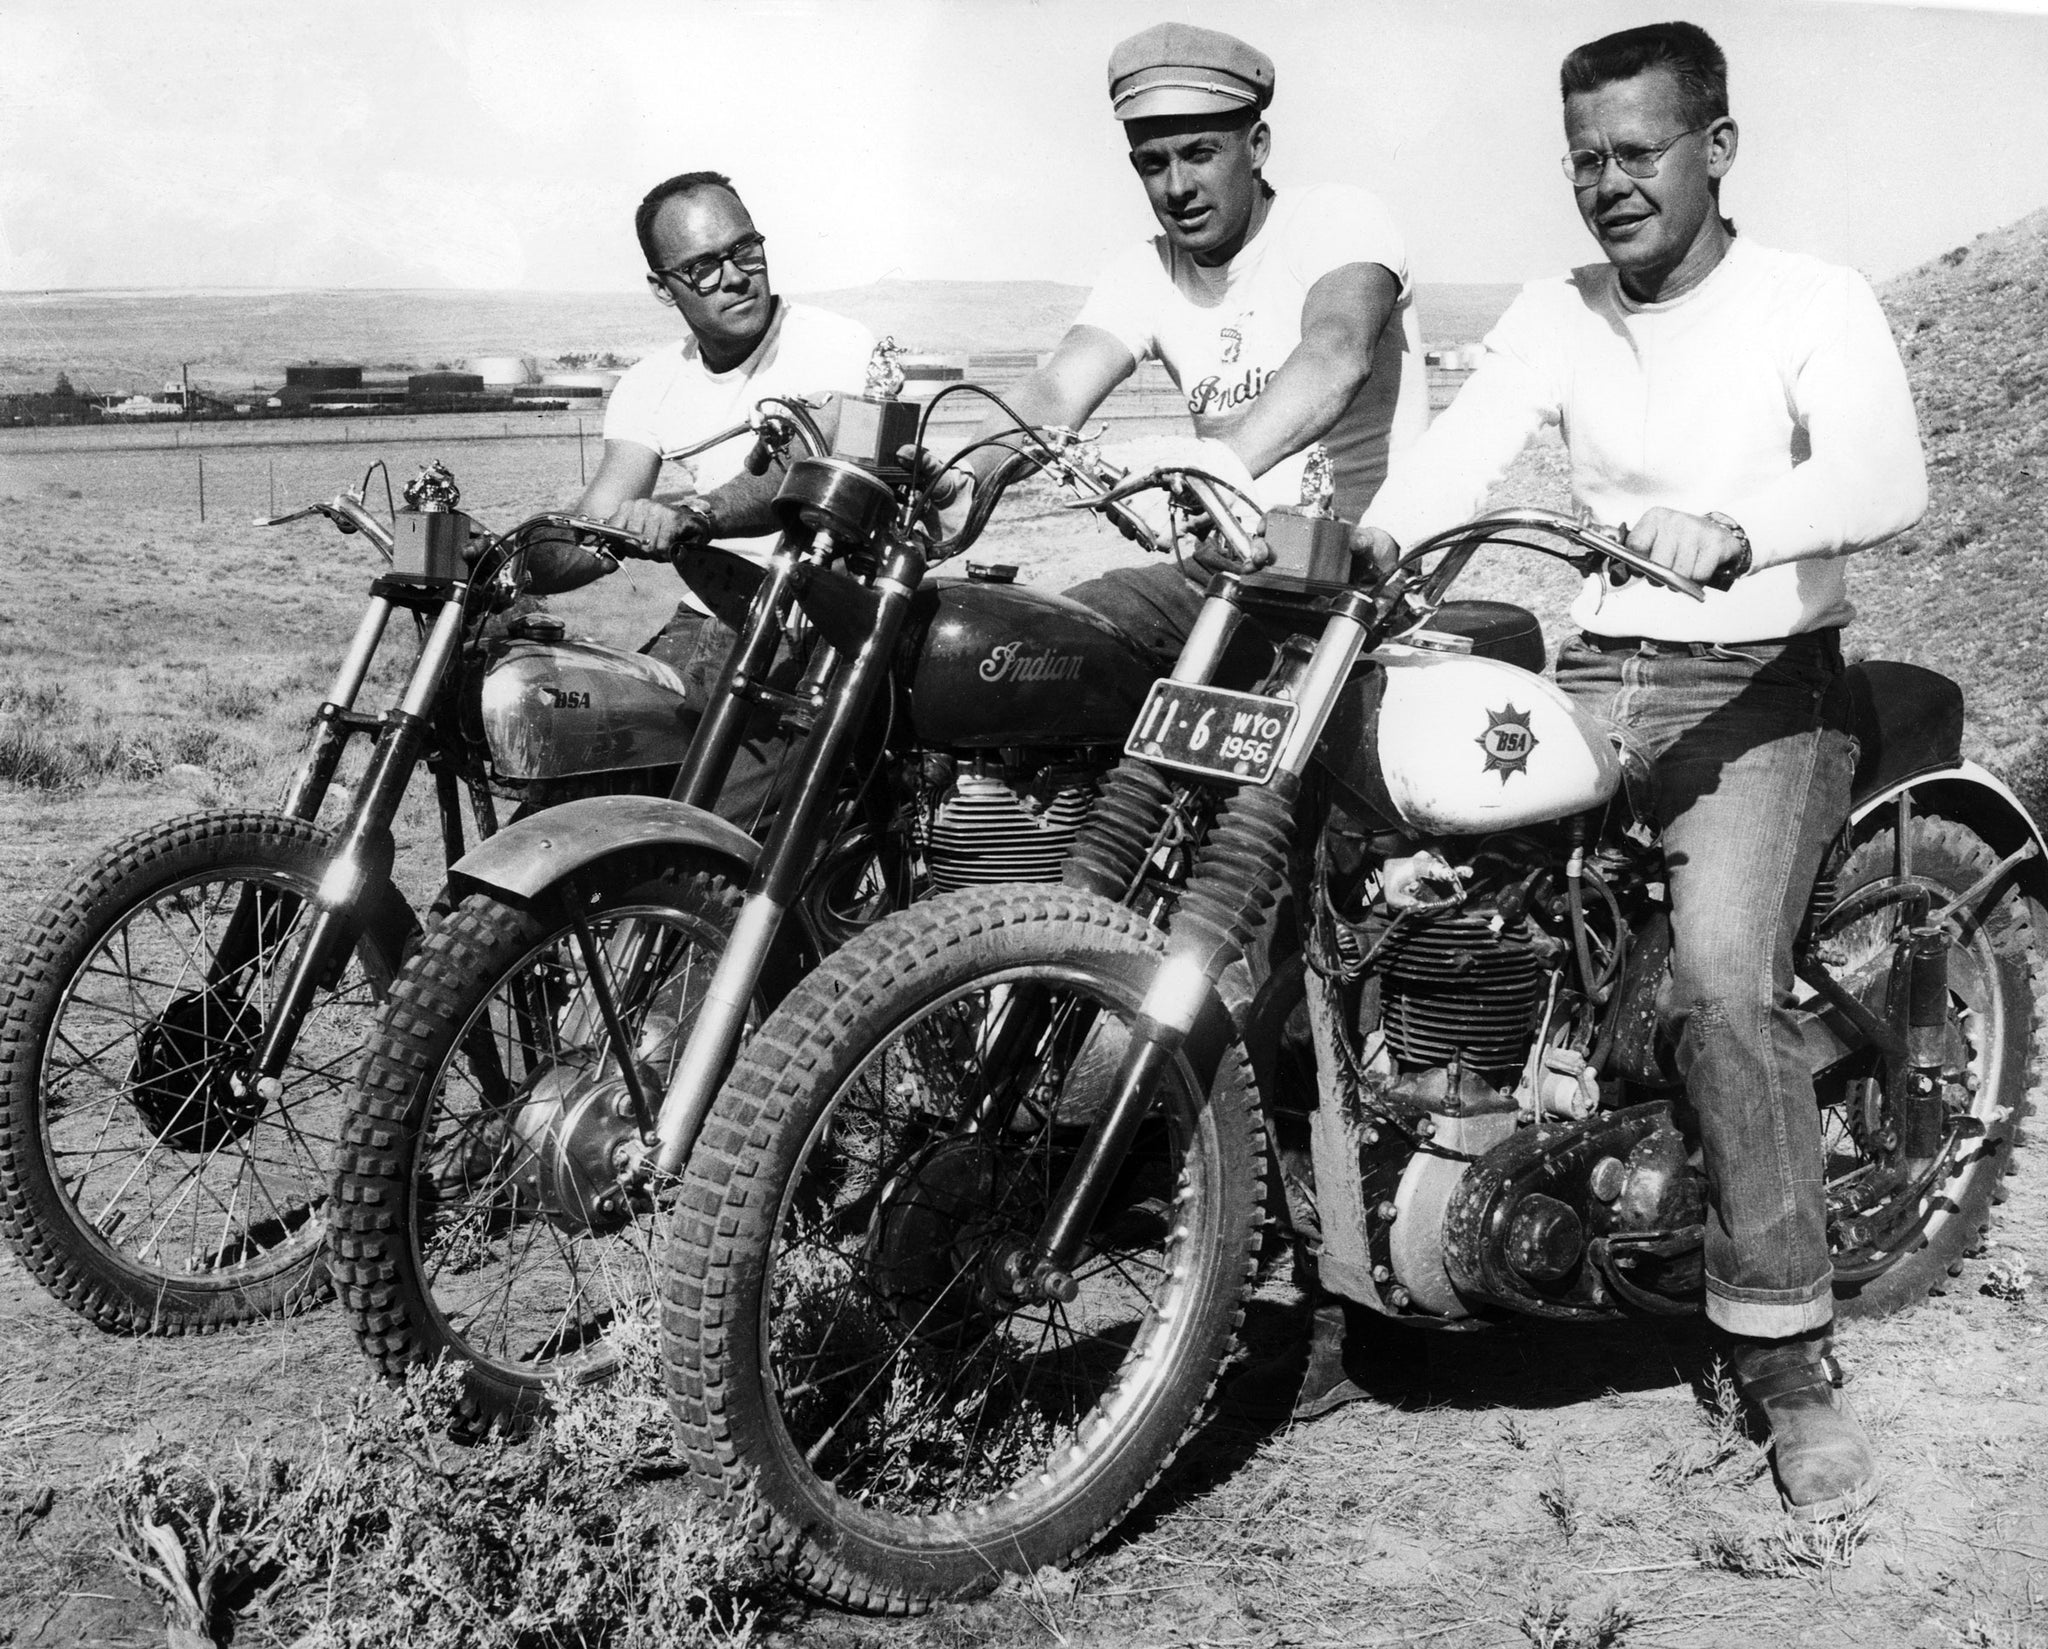 Pronghorn Motorcycle Club race winners, 1956. Lloyd Oler is in the center. -- COURTESY DEBBIE SHEDDEN